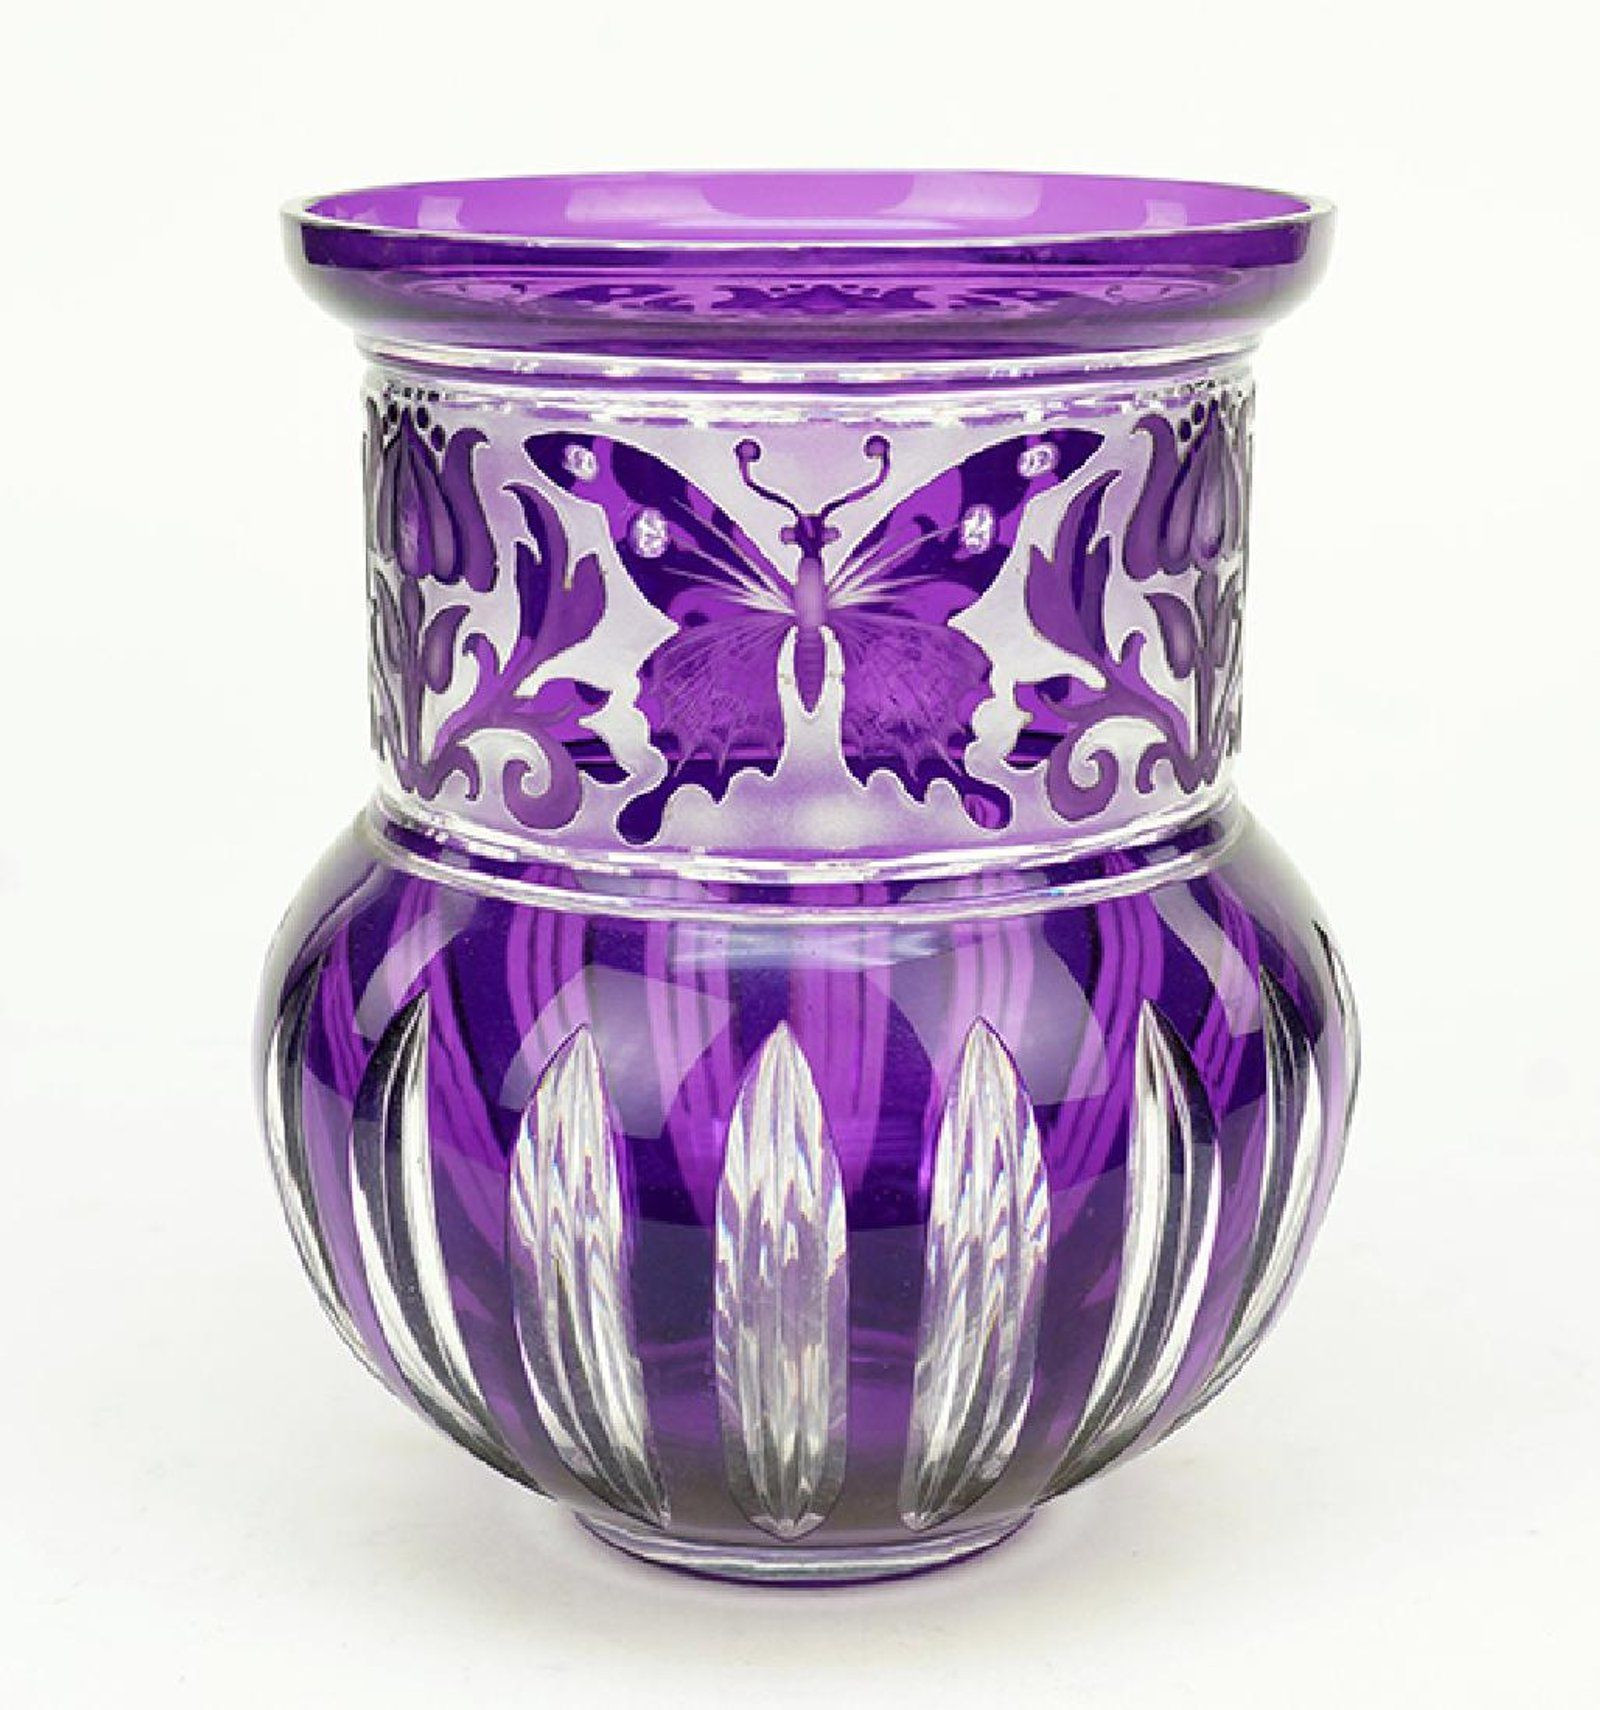 cameo glass vase of a val st lambert vase on glassies belgium val st lambert intended for a val st lambert vase purple cameo glass vase with floral and butterfly decoration